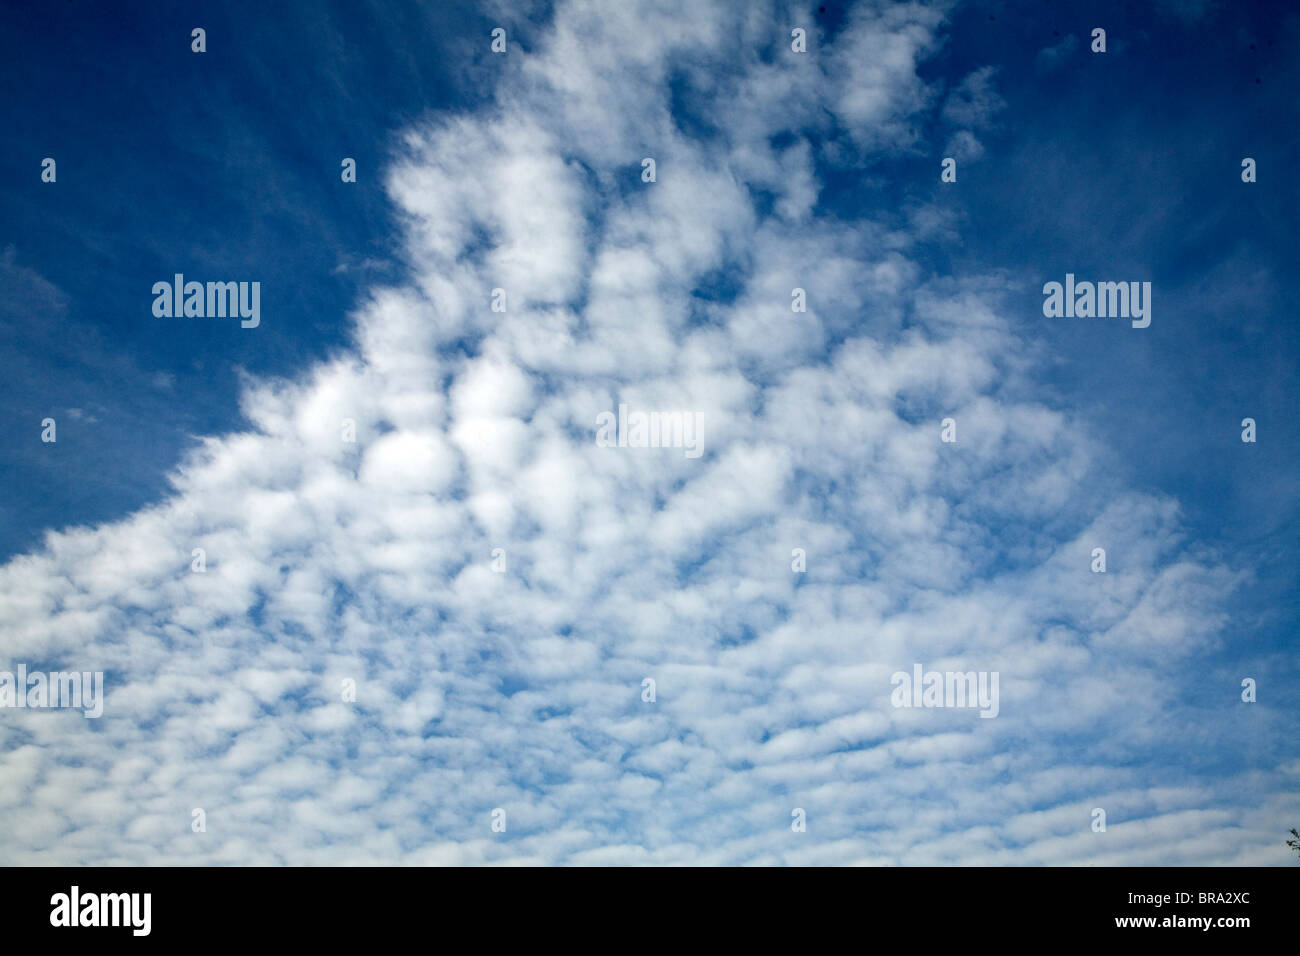 Cirro Cumulus clouds often called mackerel sky - Stock Image